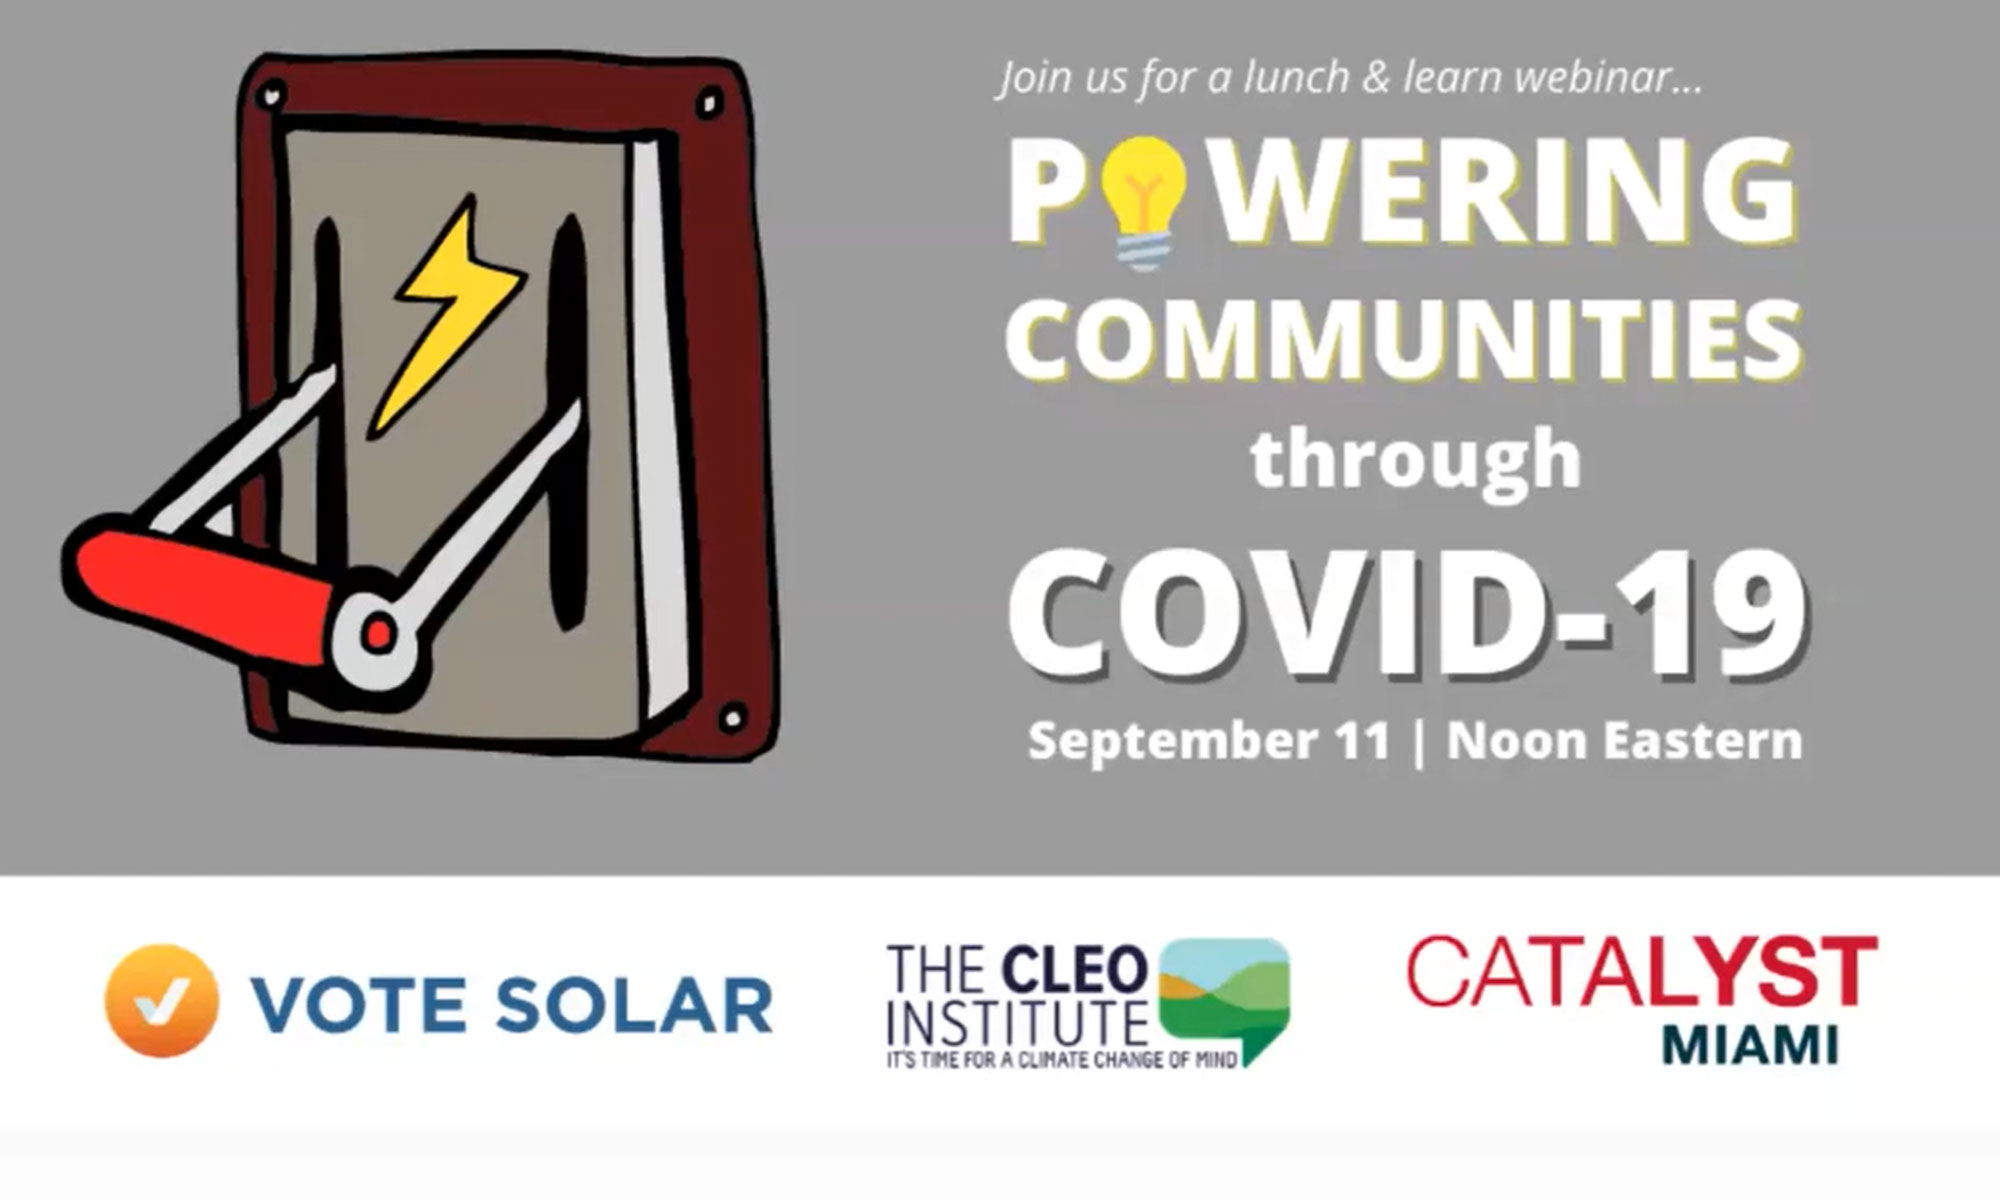 Powering Communities Through COVID-19